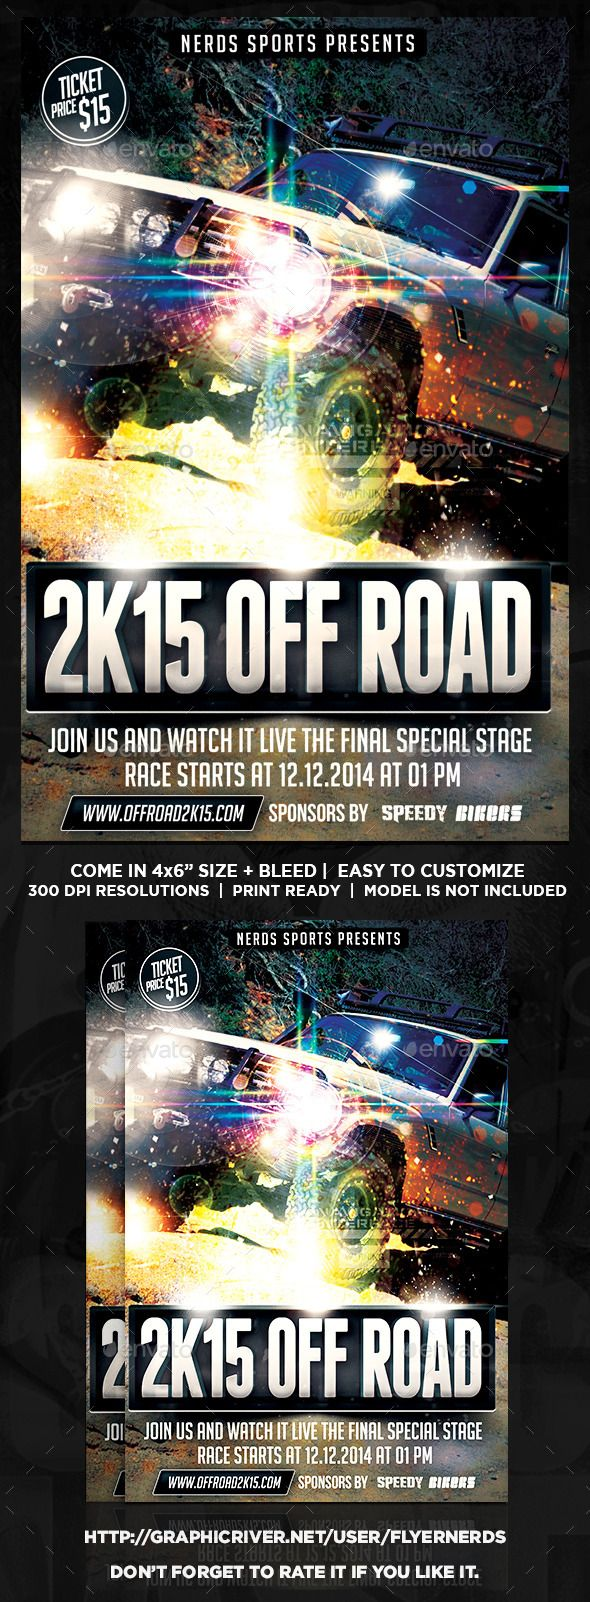 Off Road K Exhibition Sports Flyer  Cars Road Racing And Racing